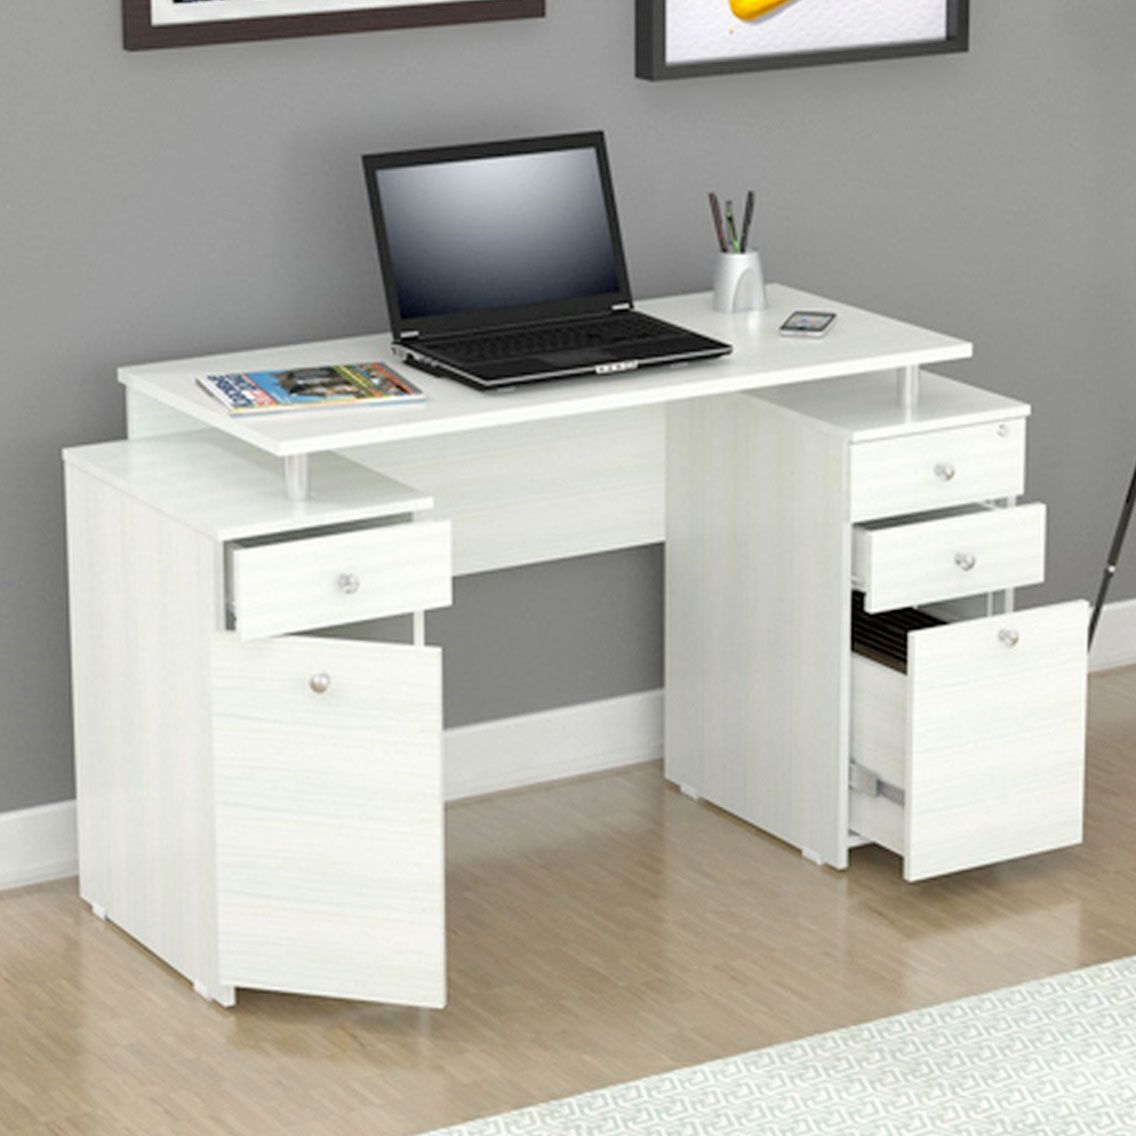 White Writing Desk With Drawers Storage Gift Ideas For Writers Desk With Drawers White Desk With Drawers White Writing Desk